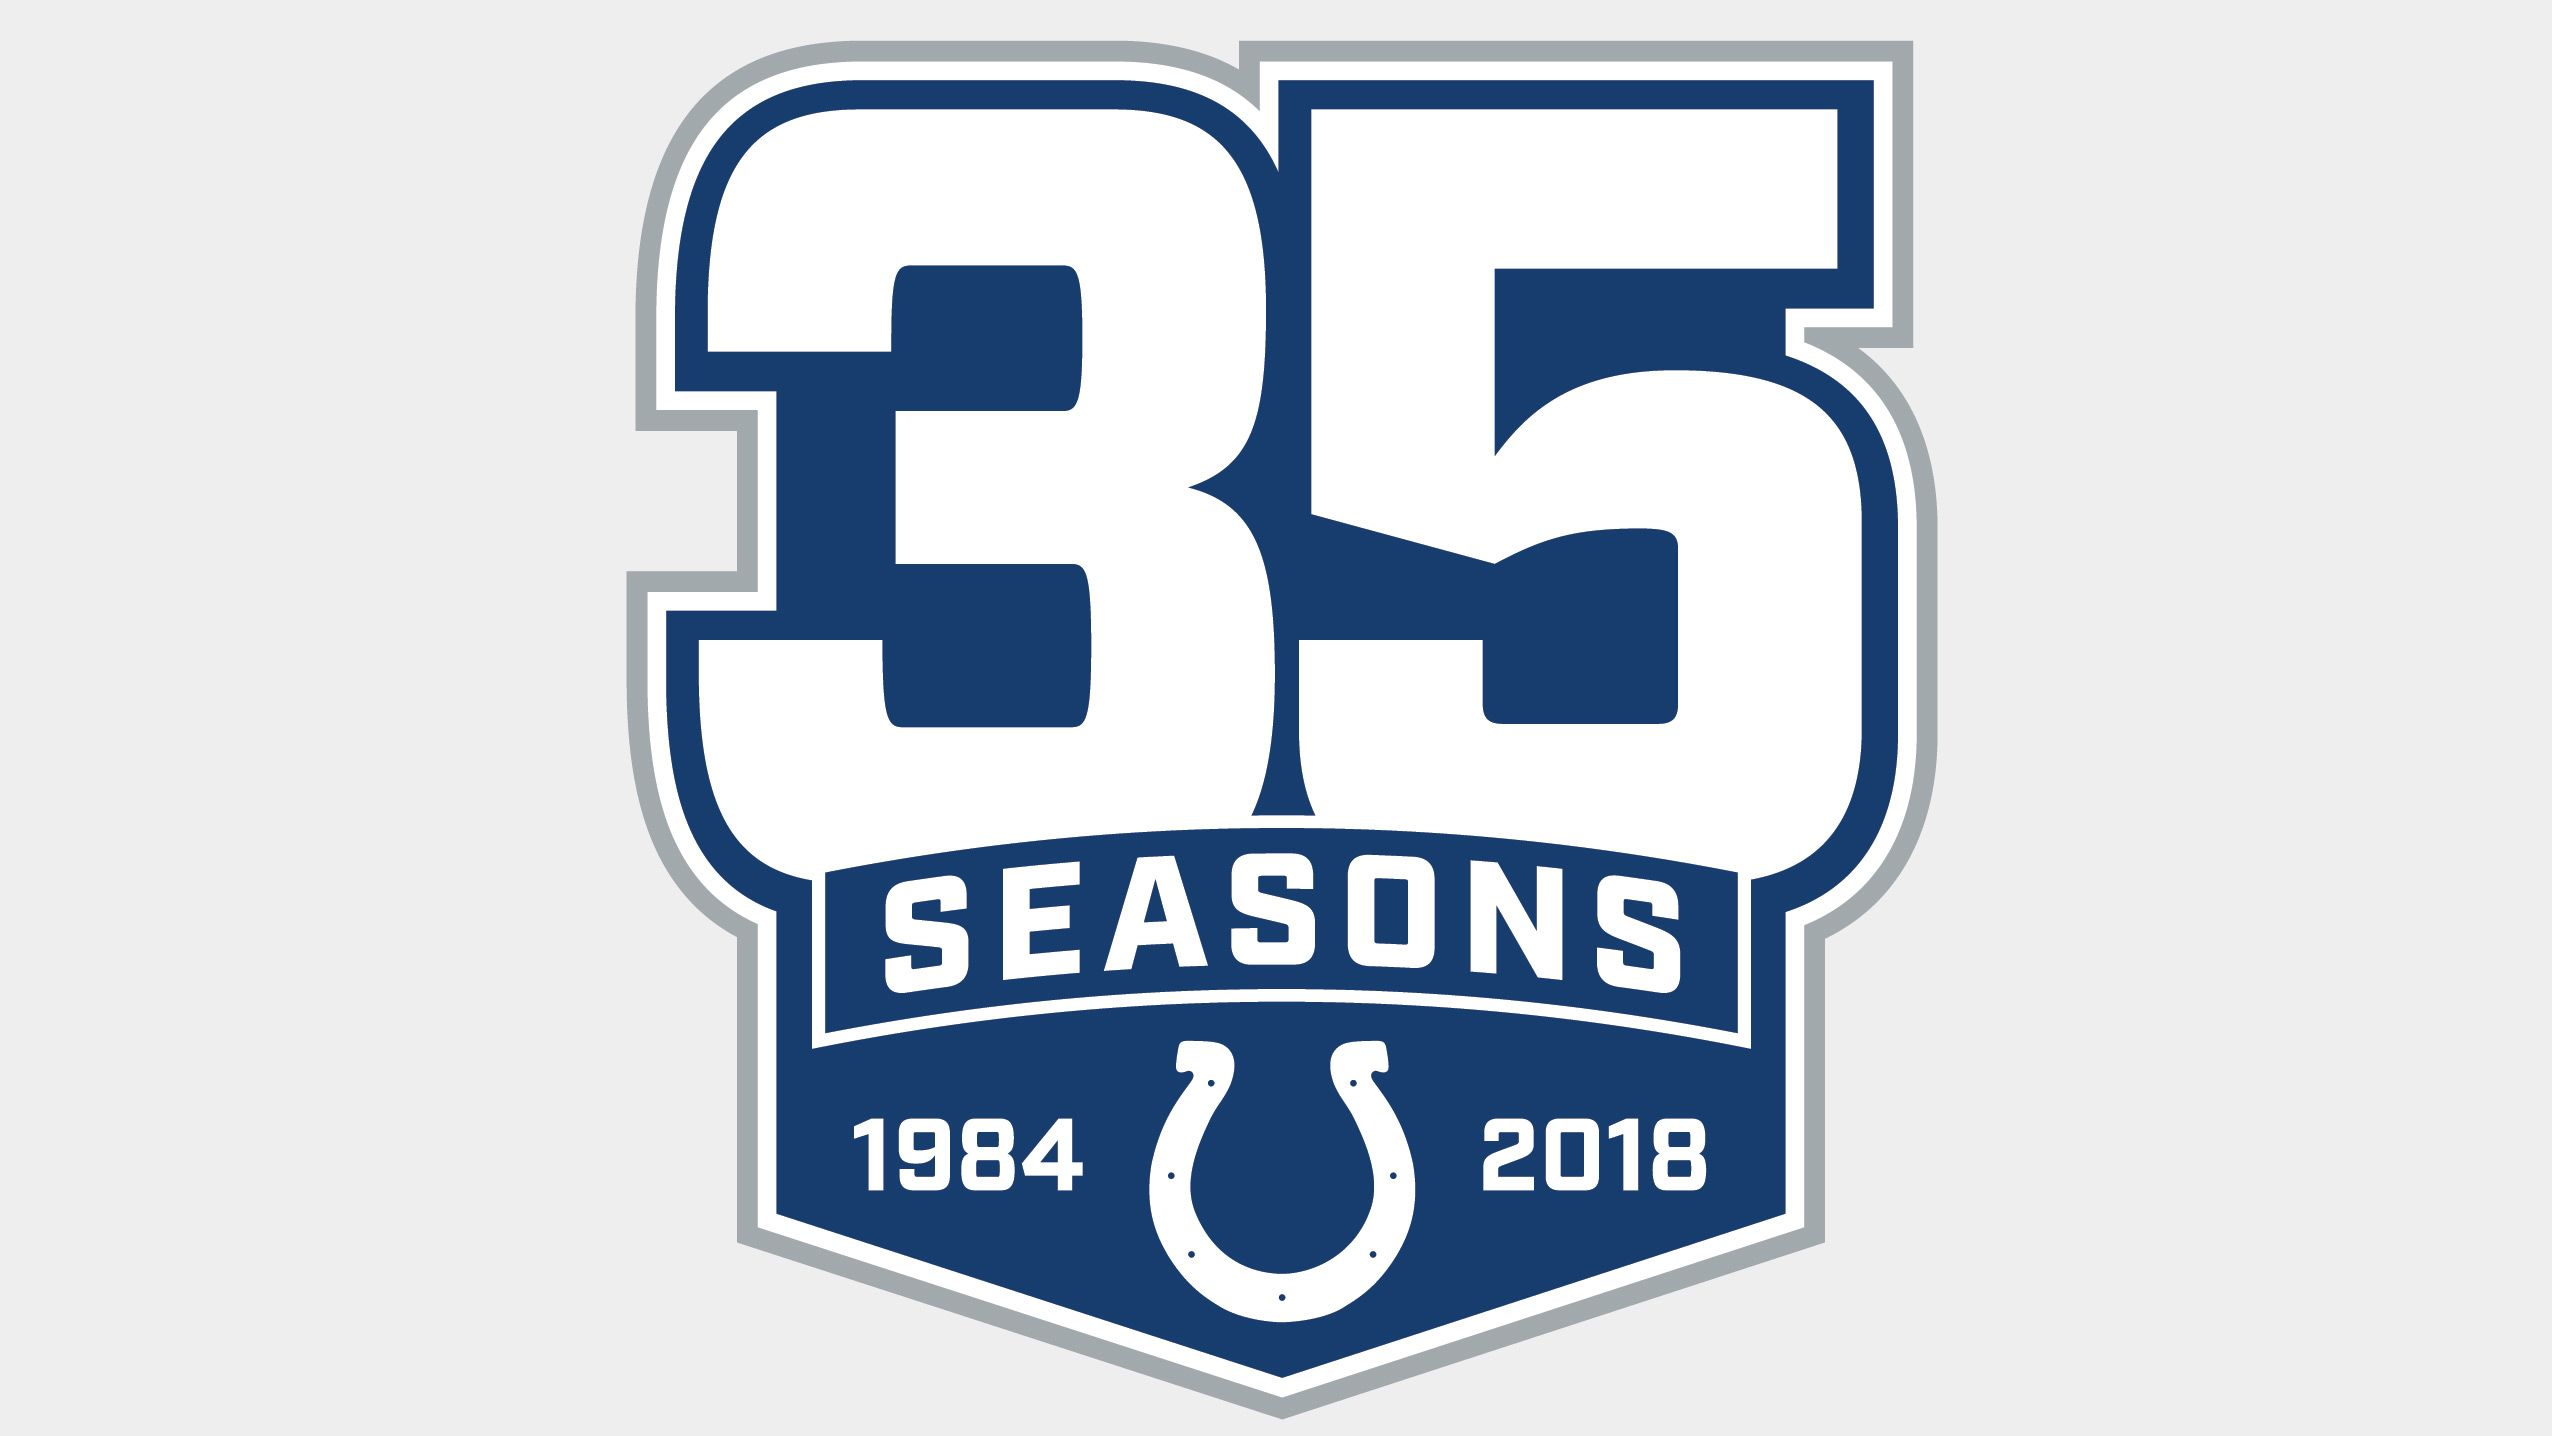 35thseasonlogo-grey